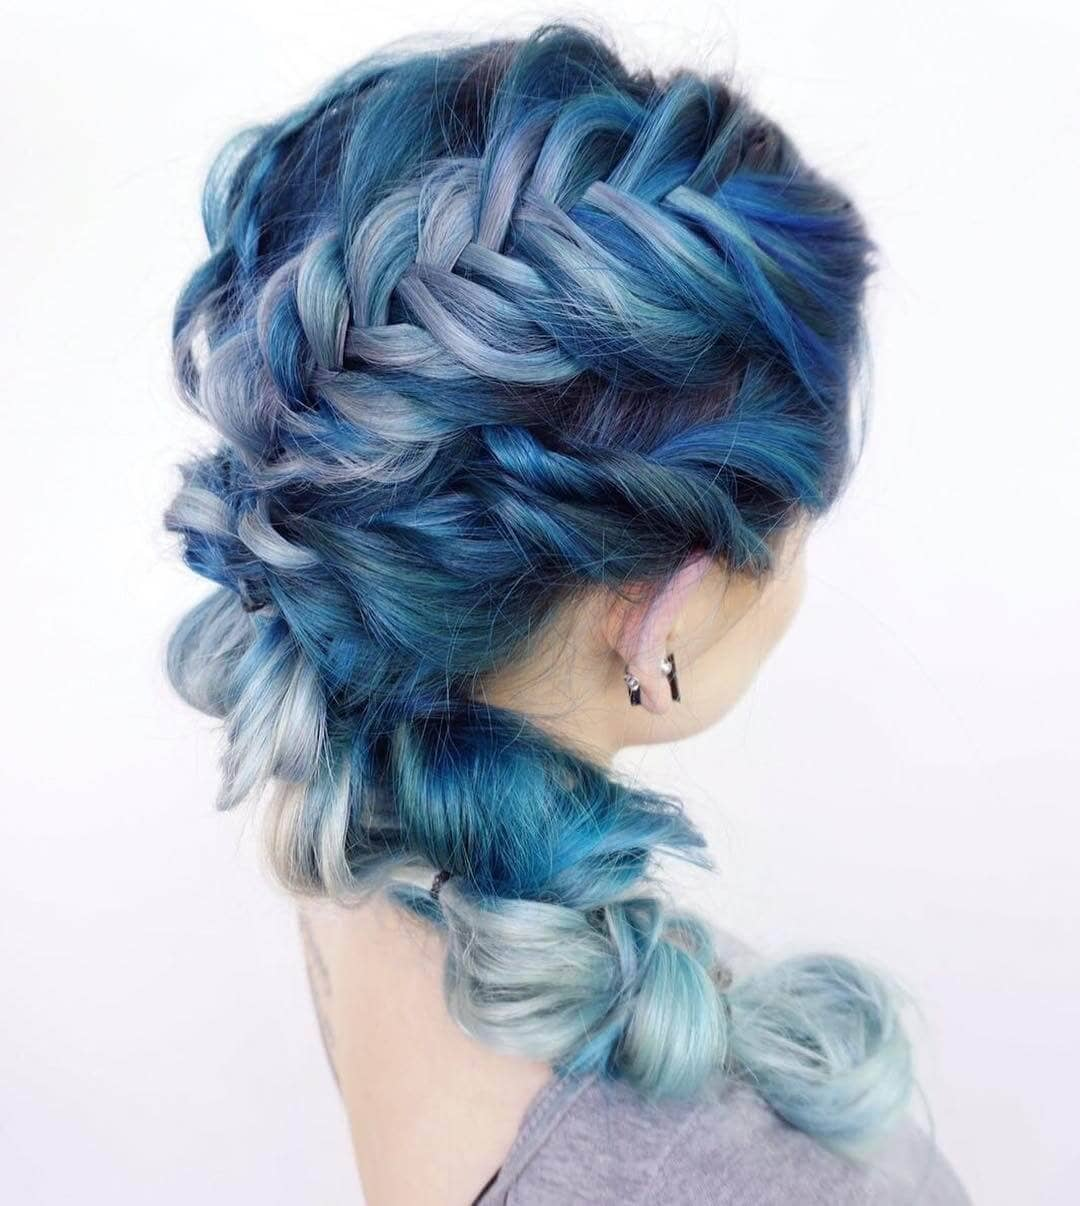 Blue Shades In The Braids